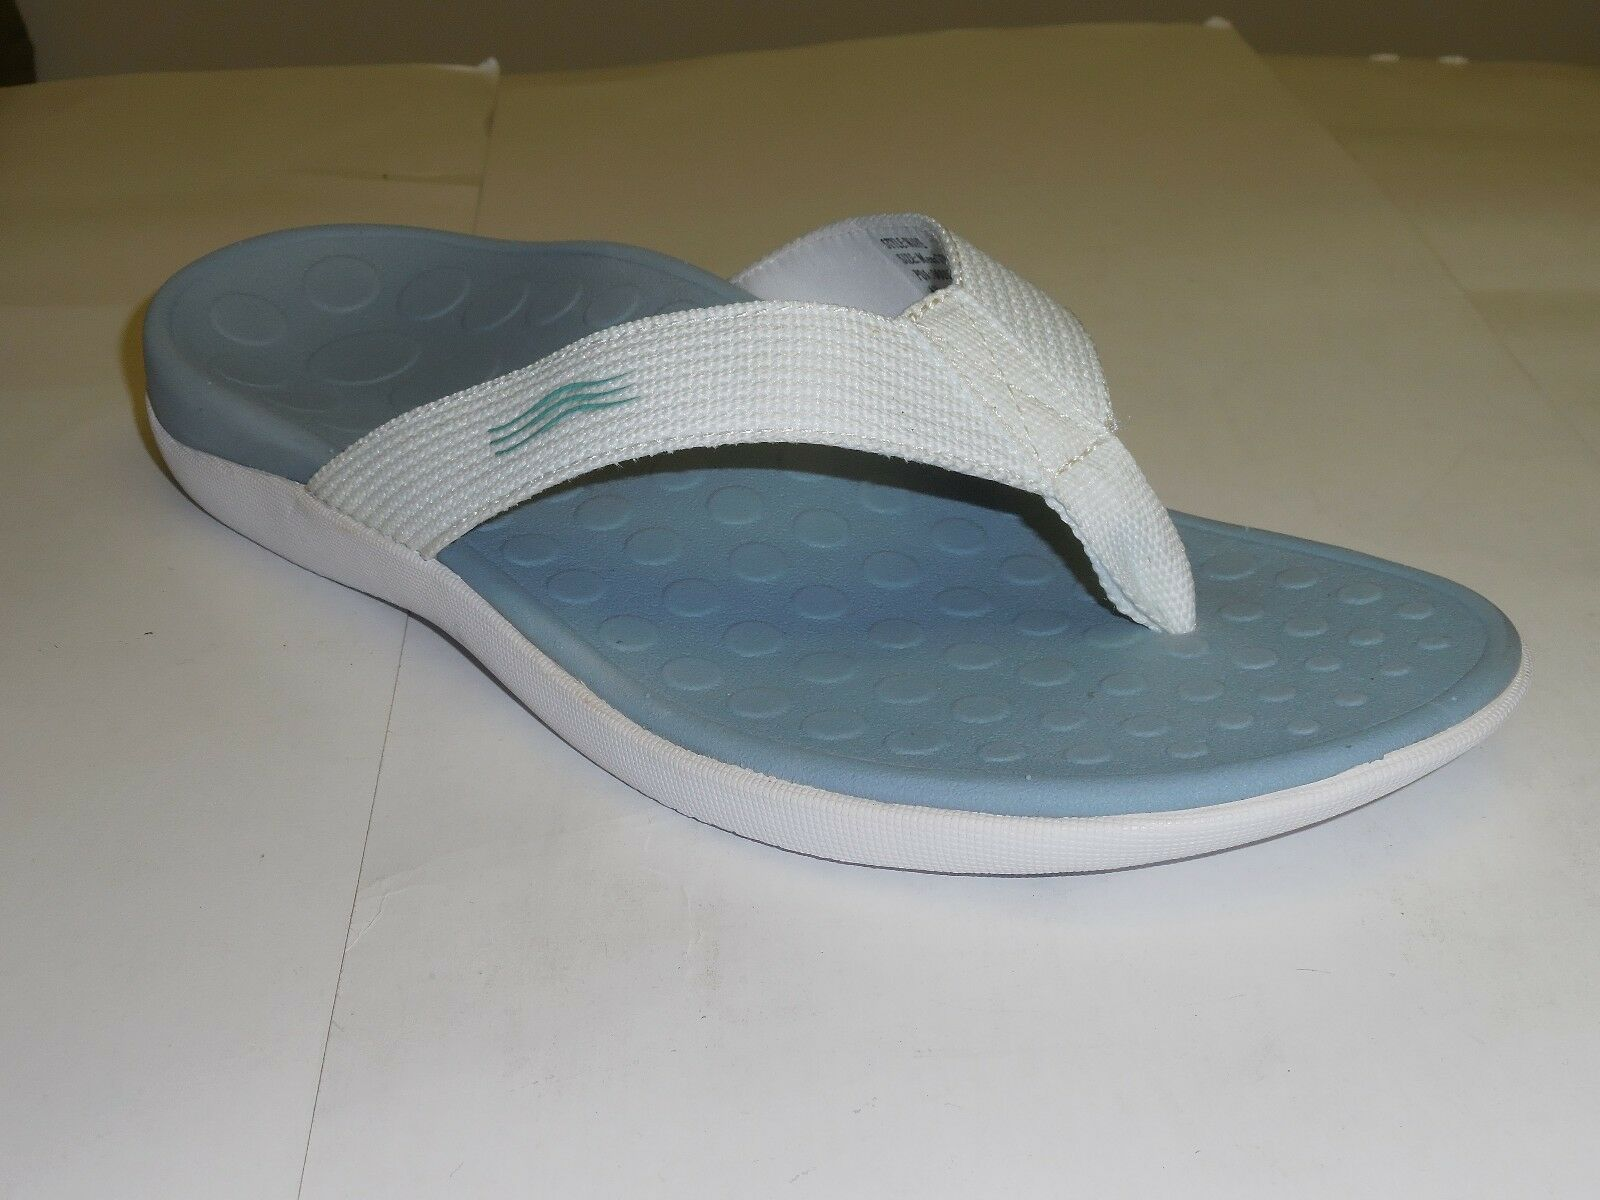 The Original Orthaheel Unisex Sandals With Orthaheel Technology Wave White bluee